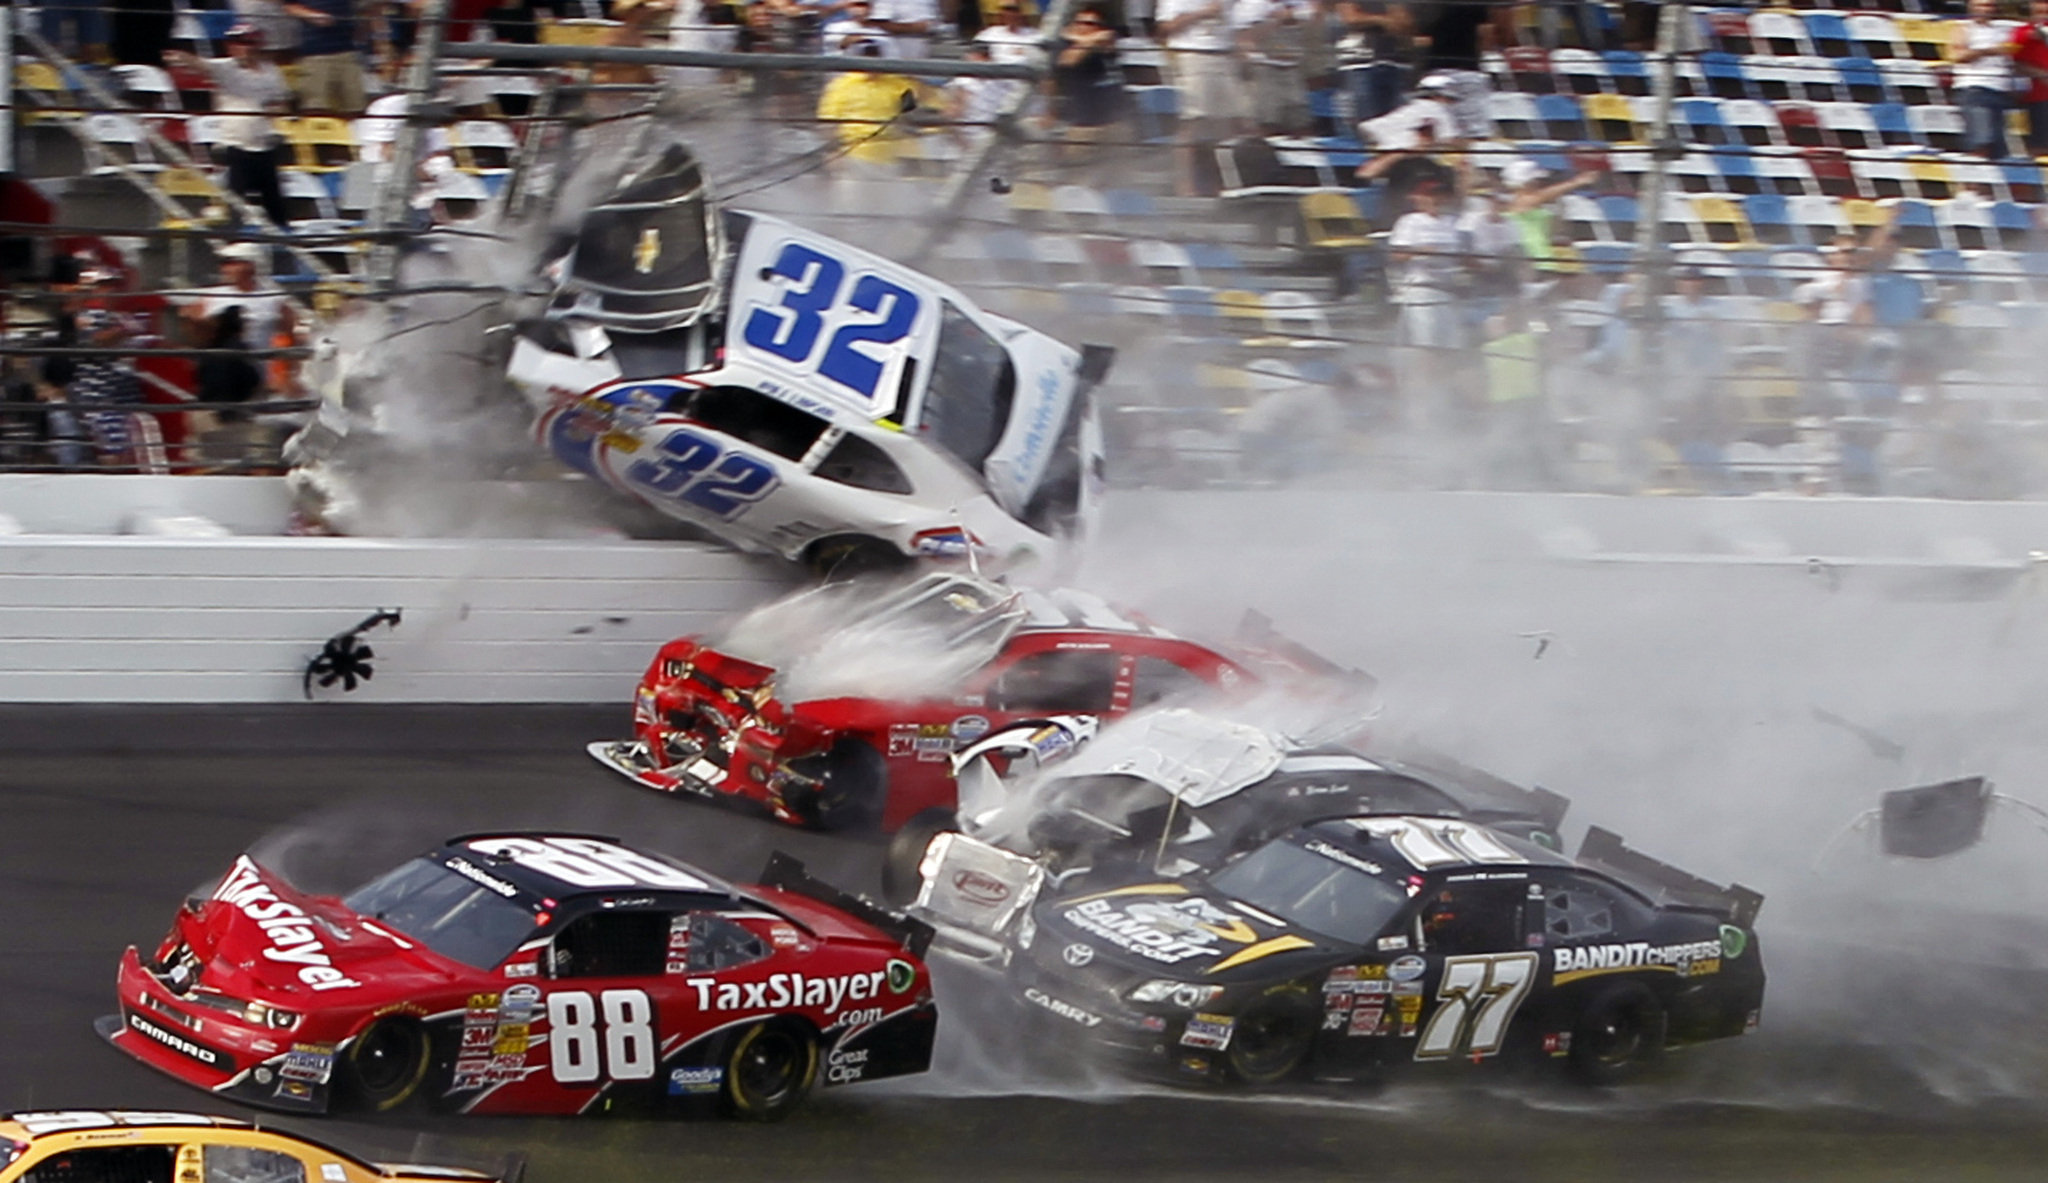 cars accident wreck track disaster sports stock wallpaper 2048x1183 2048x1183